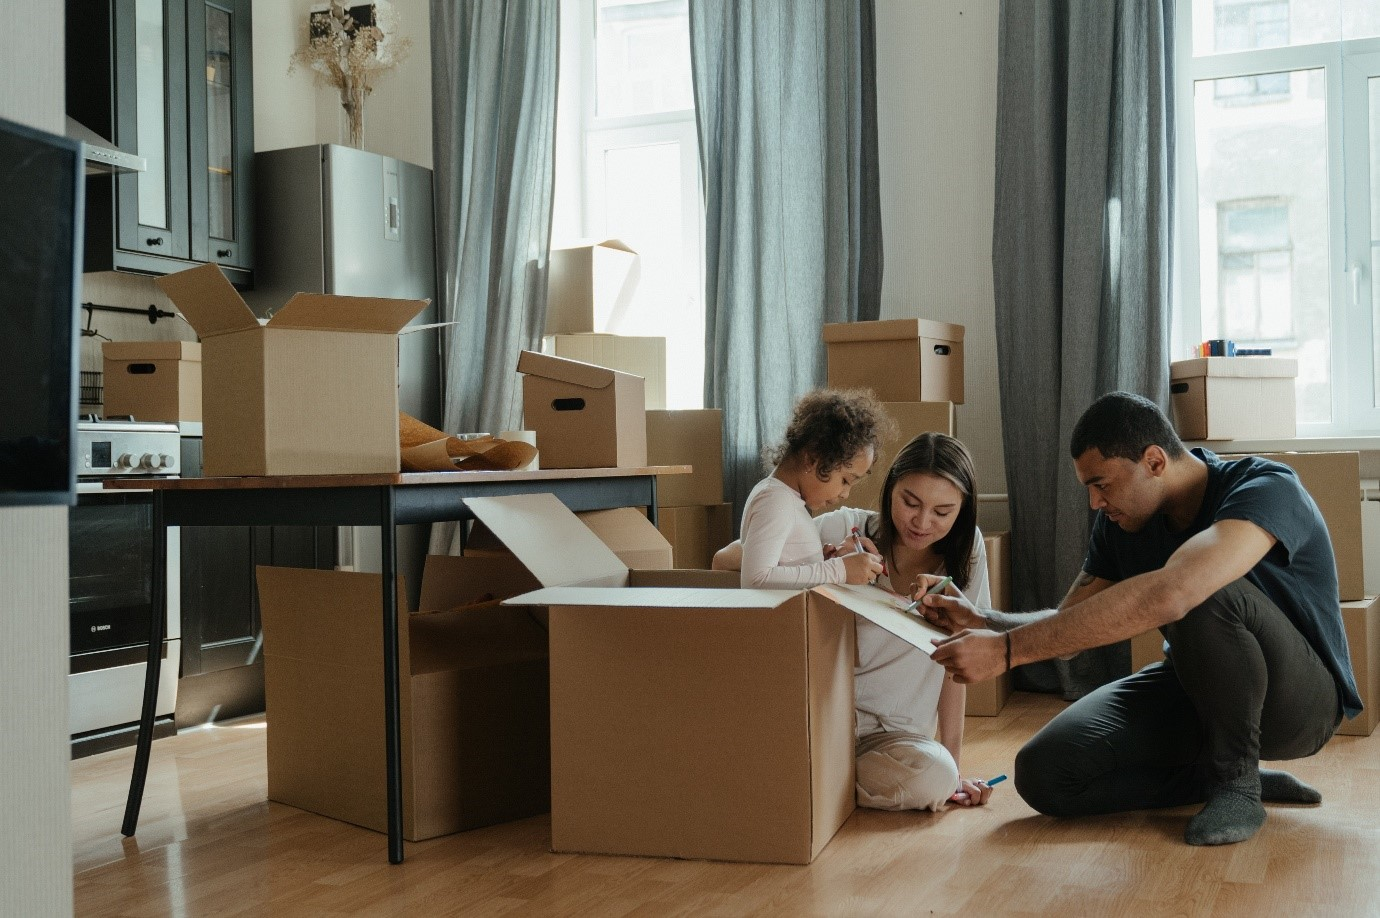 How to prepare your house for viewings